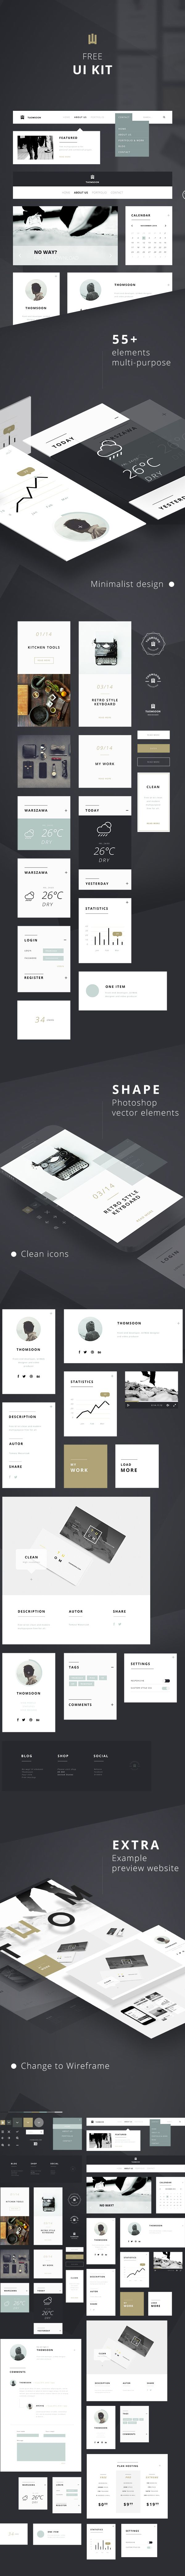 55+ Elements FREE UI KIT | Clean white [DOWNLOAD] on Behance #free #ui #userinterface #uidesign #uikit #design #web #clean